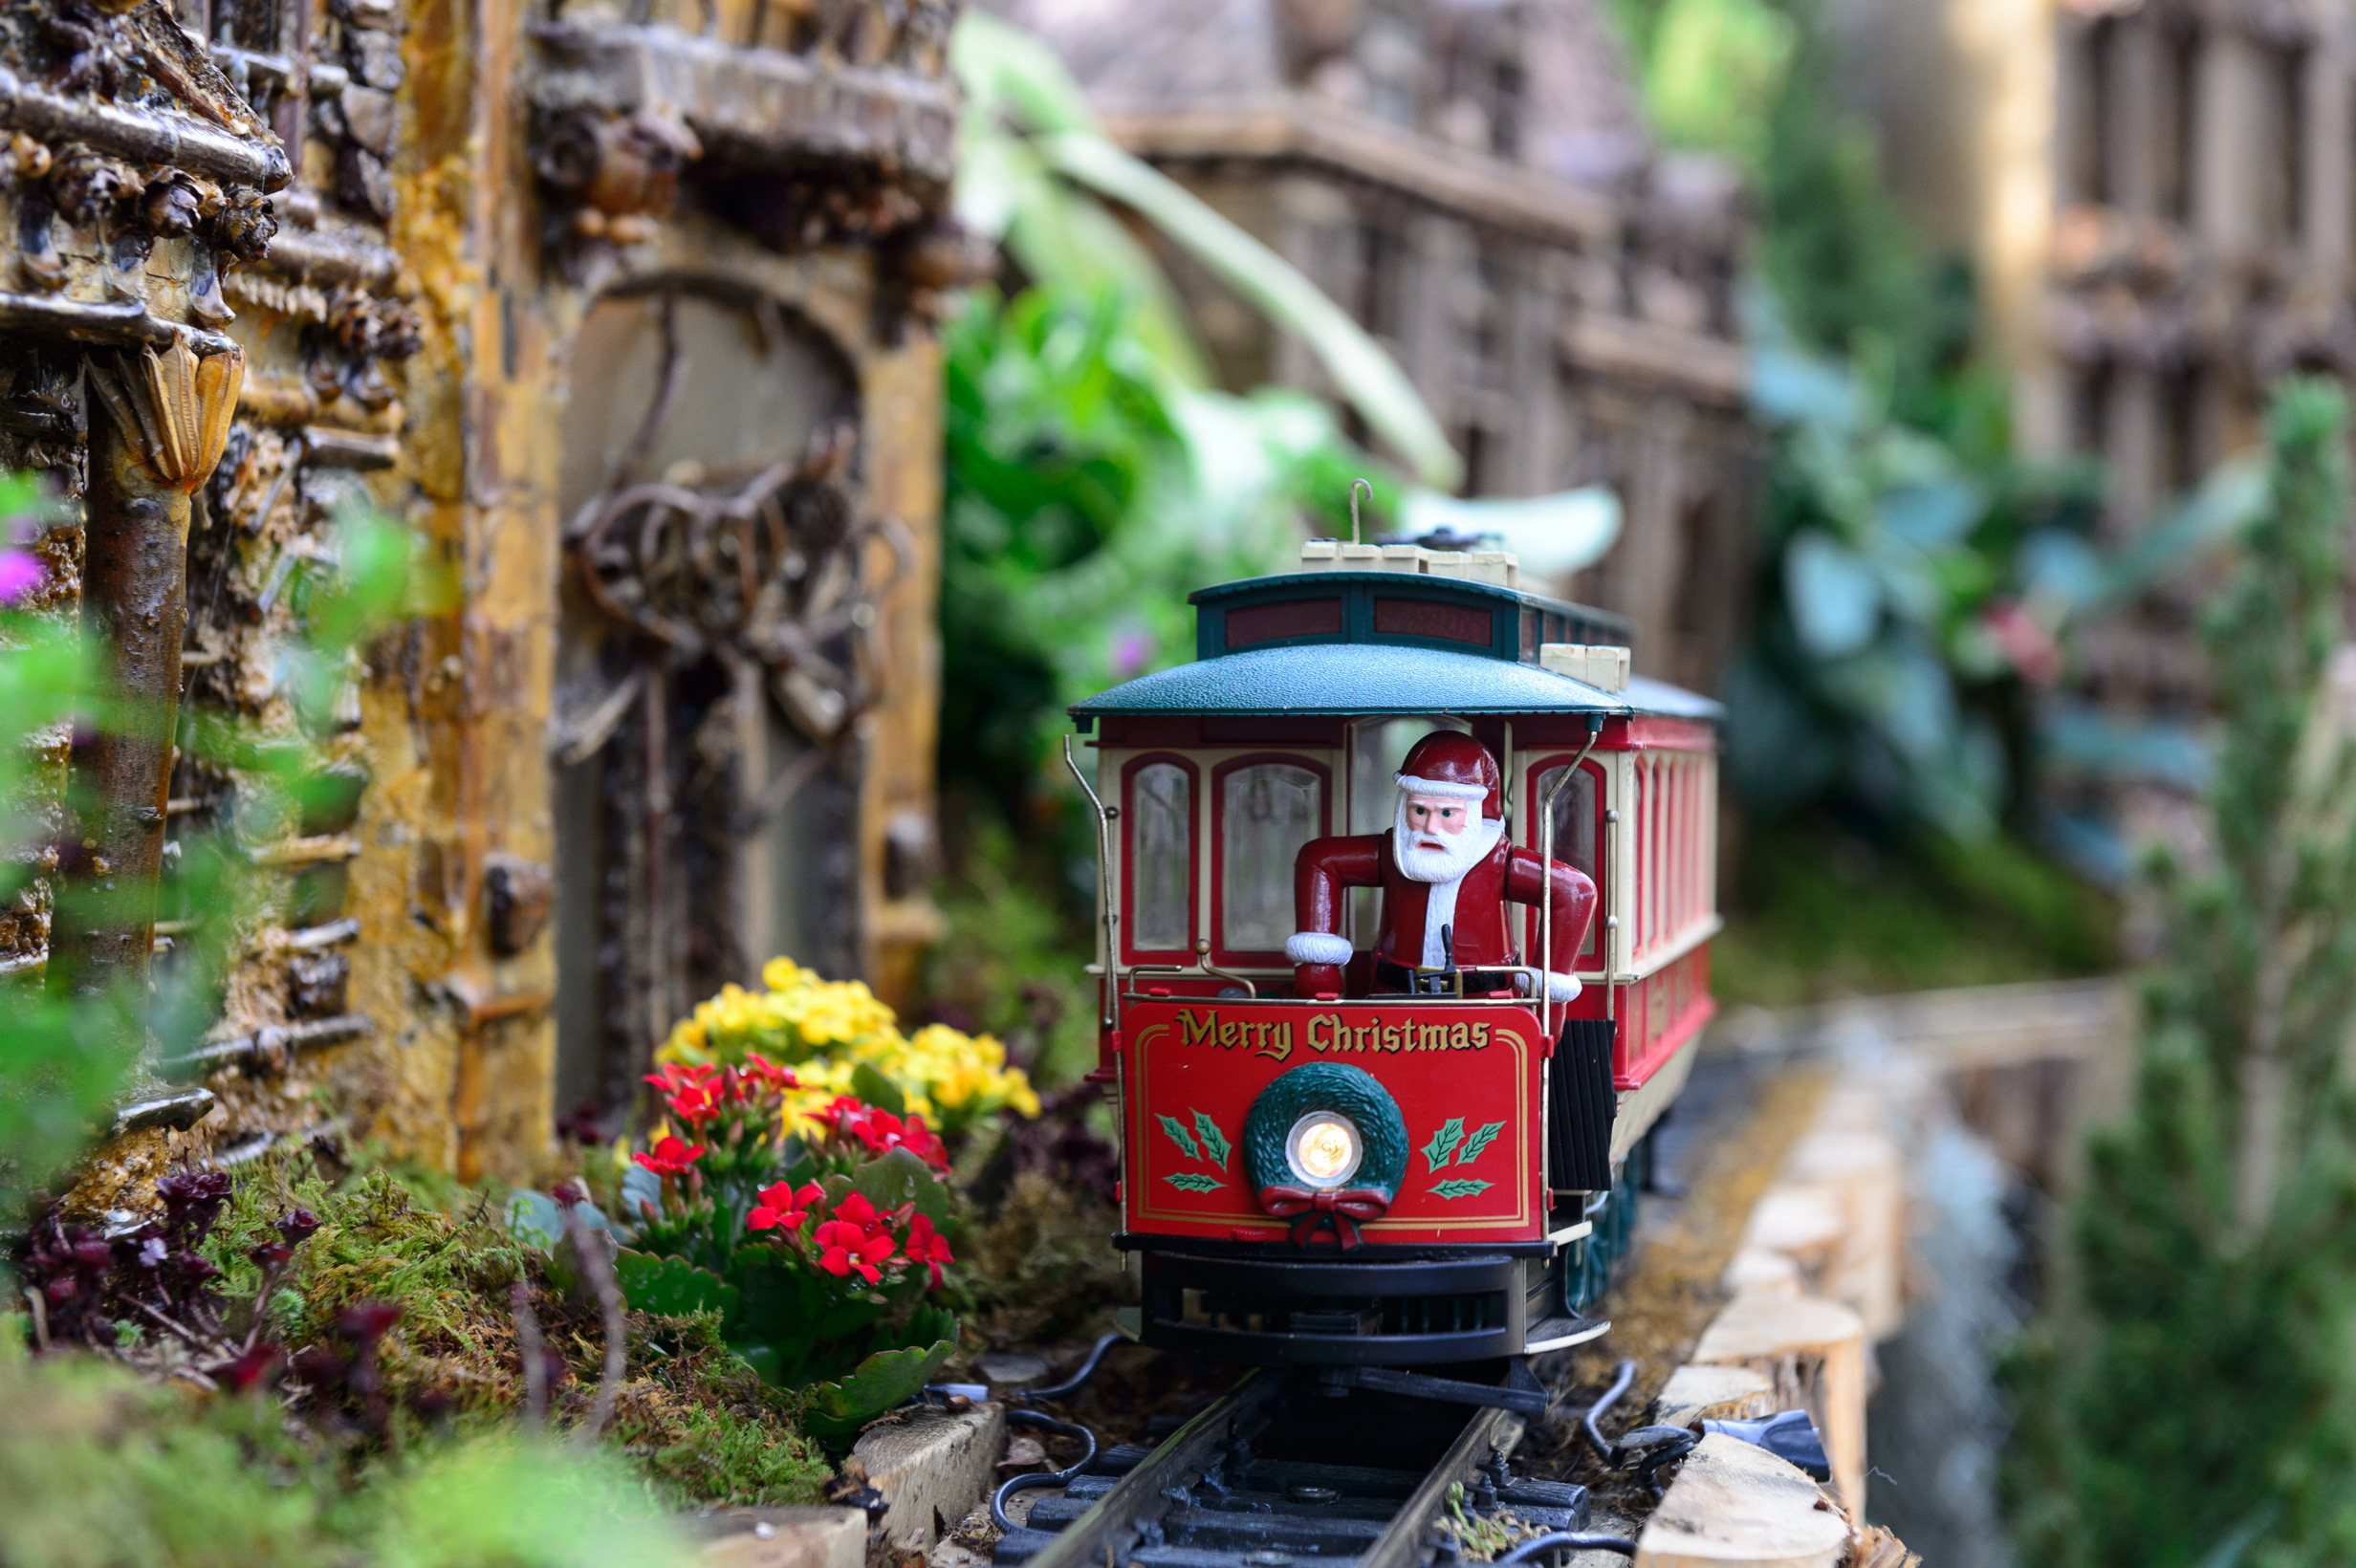 Holiday trains shows for families in NYC